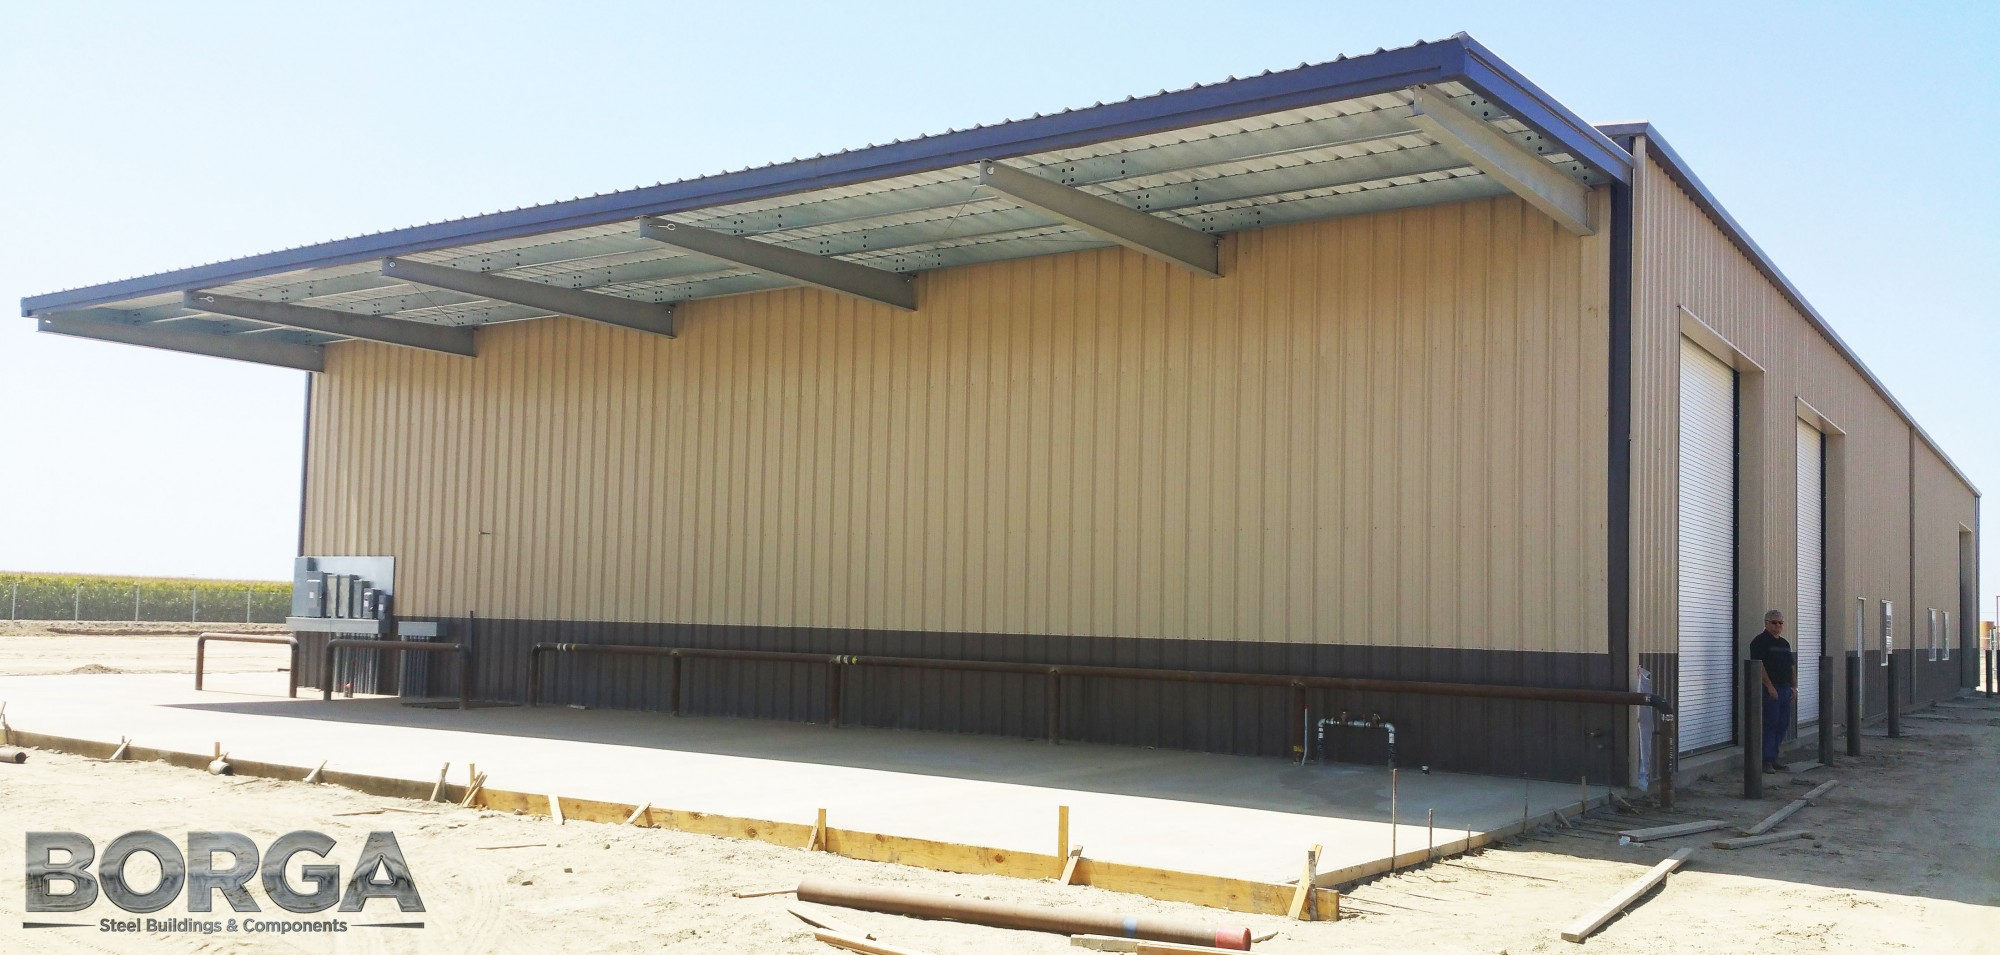 borga steel buildings roofing metal fresno ca corcoran ag farming tan brown agriculture 10 fragoso